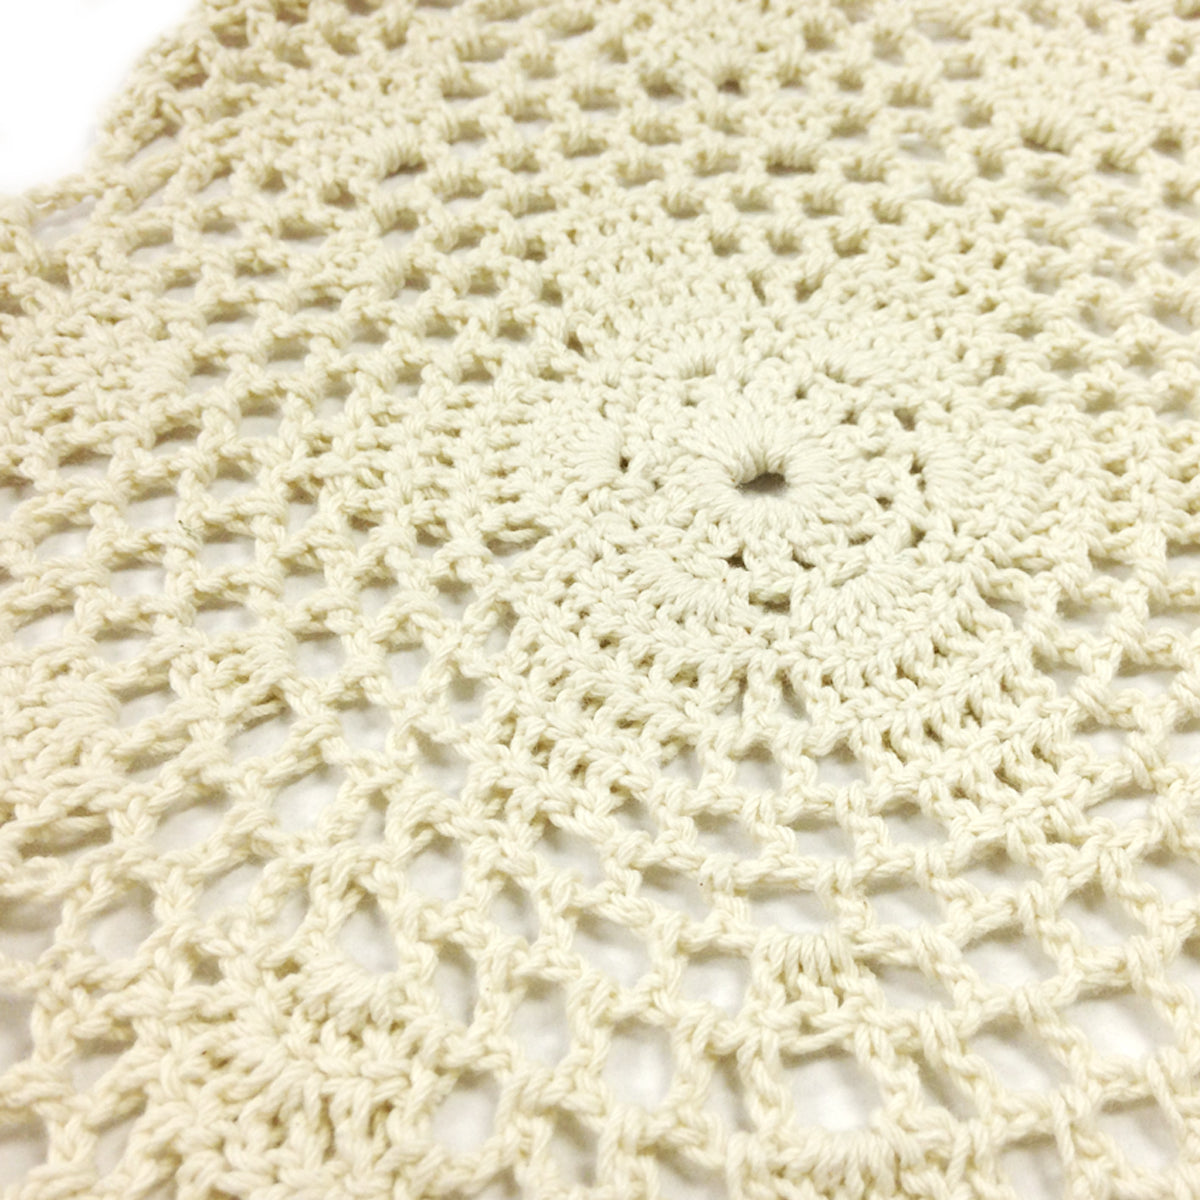 Wrapables Large Beige Round Crochet Cotton Doily Placemat, Set of 4